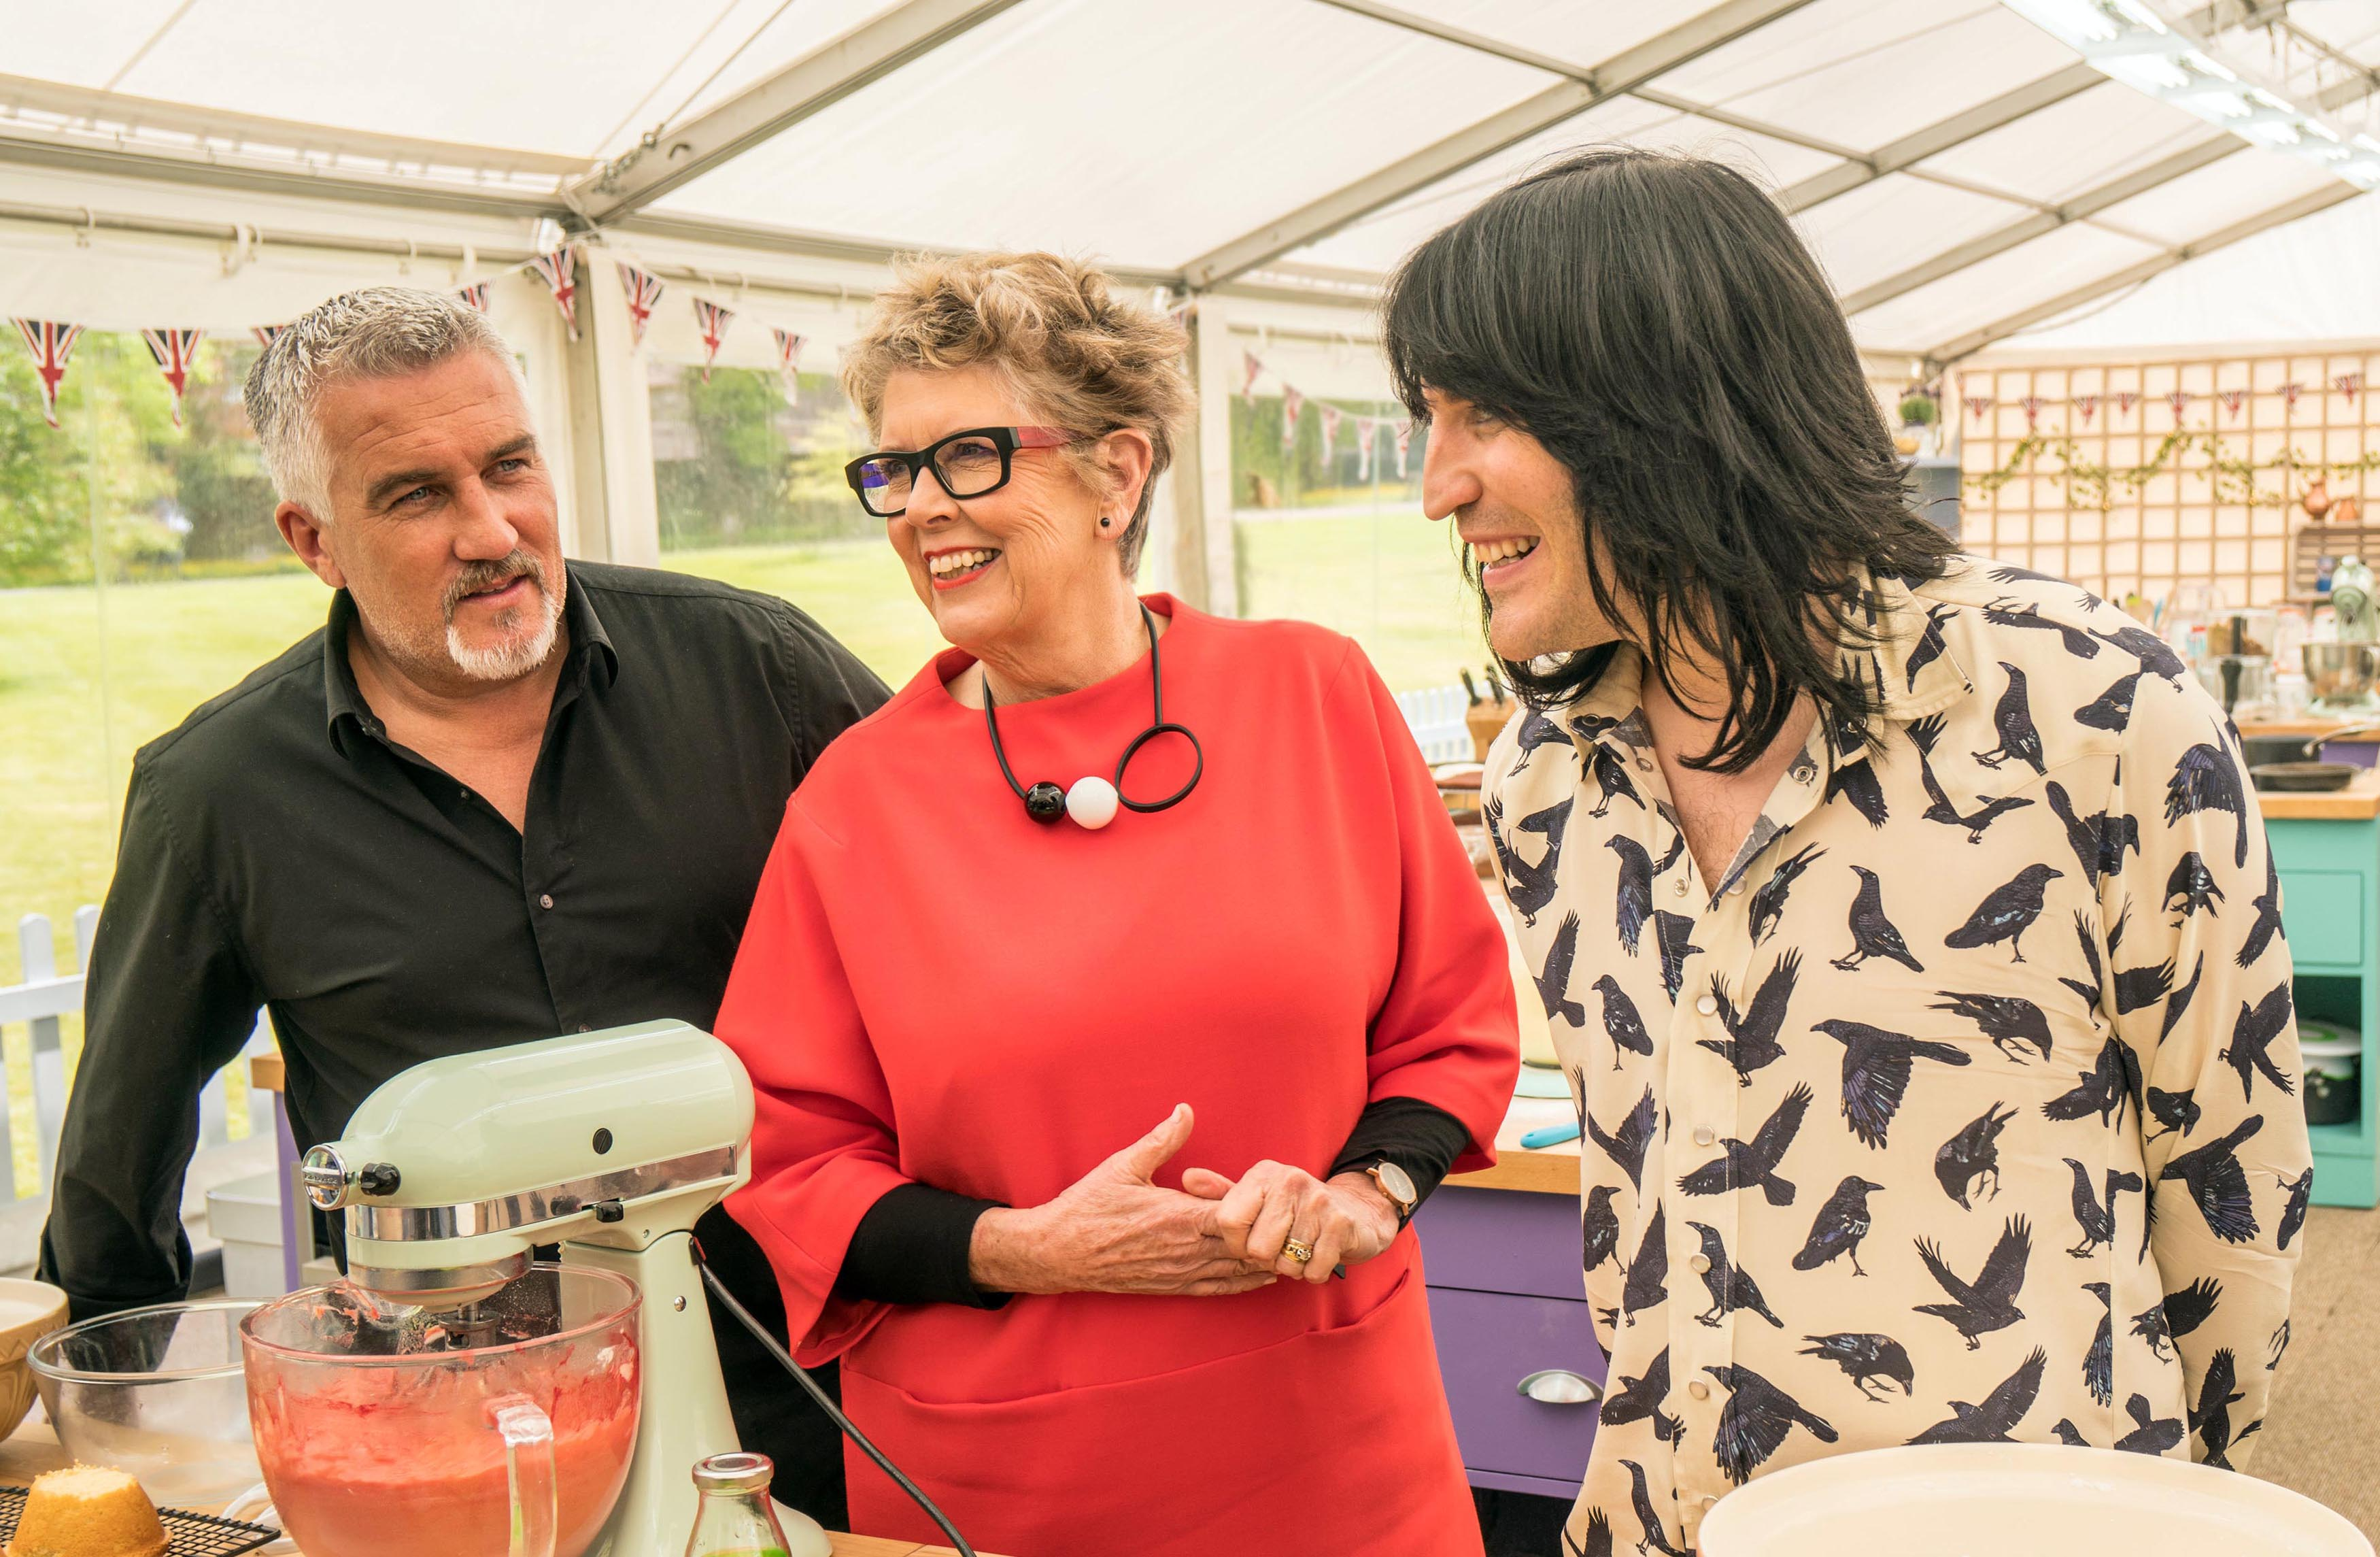 Paul Hollywood with Bake Off newcomers Prue Leith and Noel Fielding